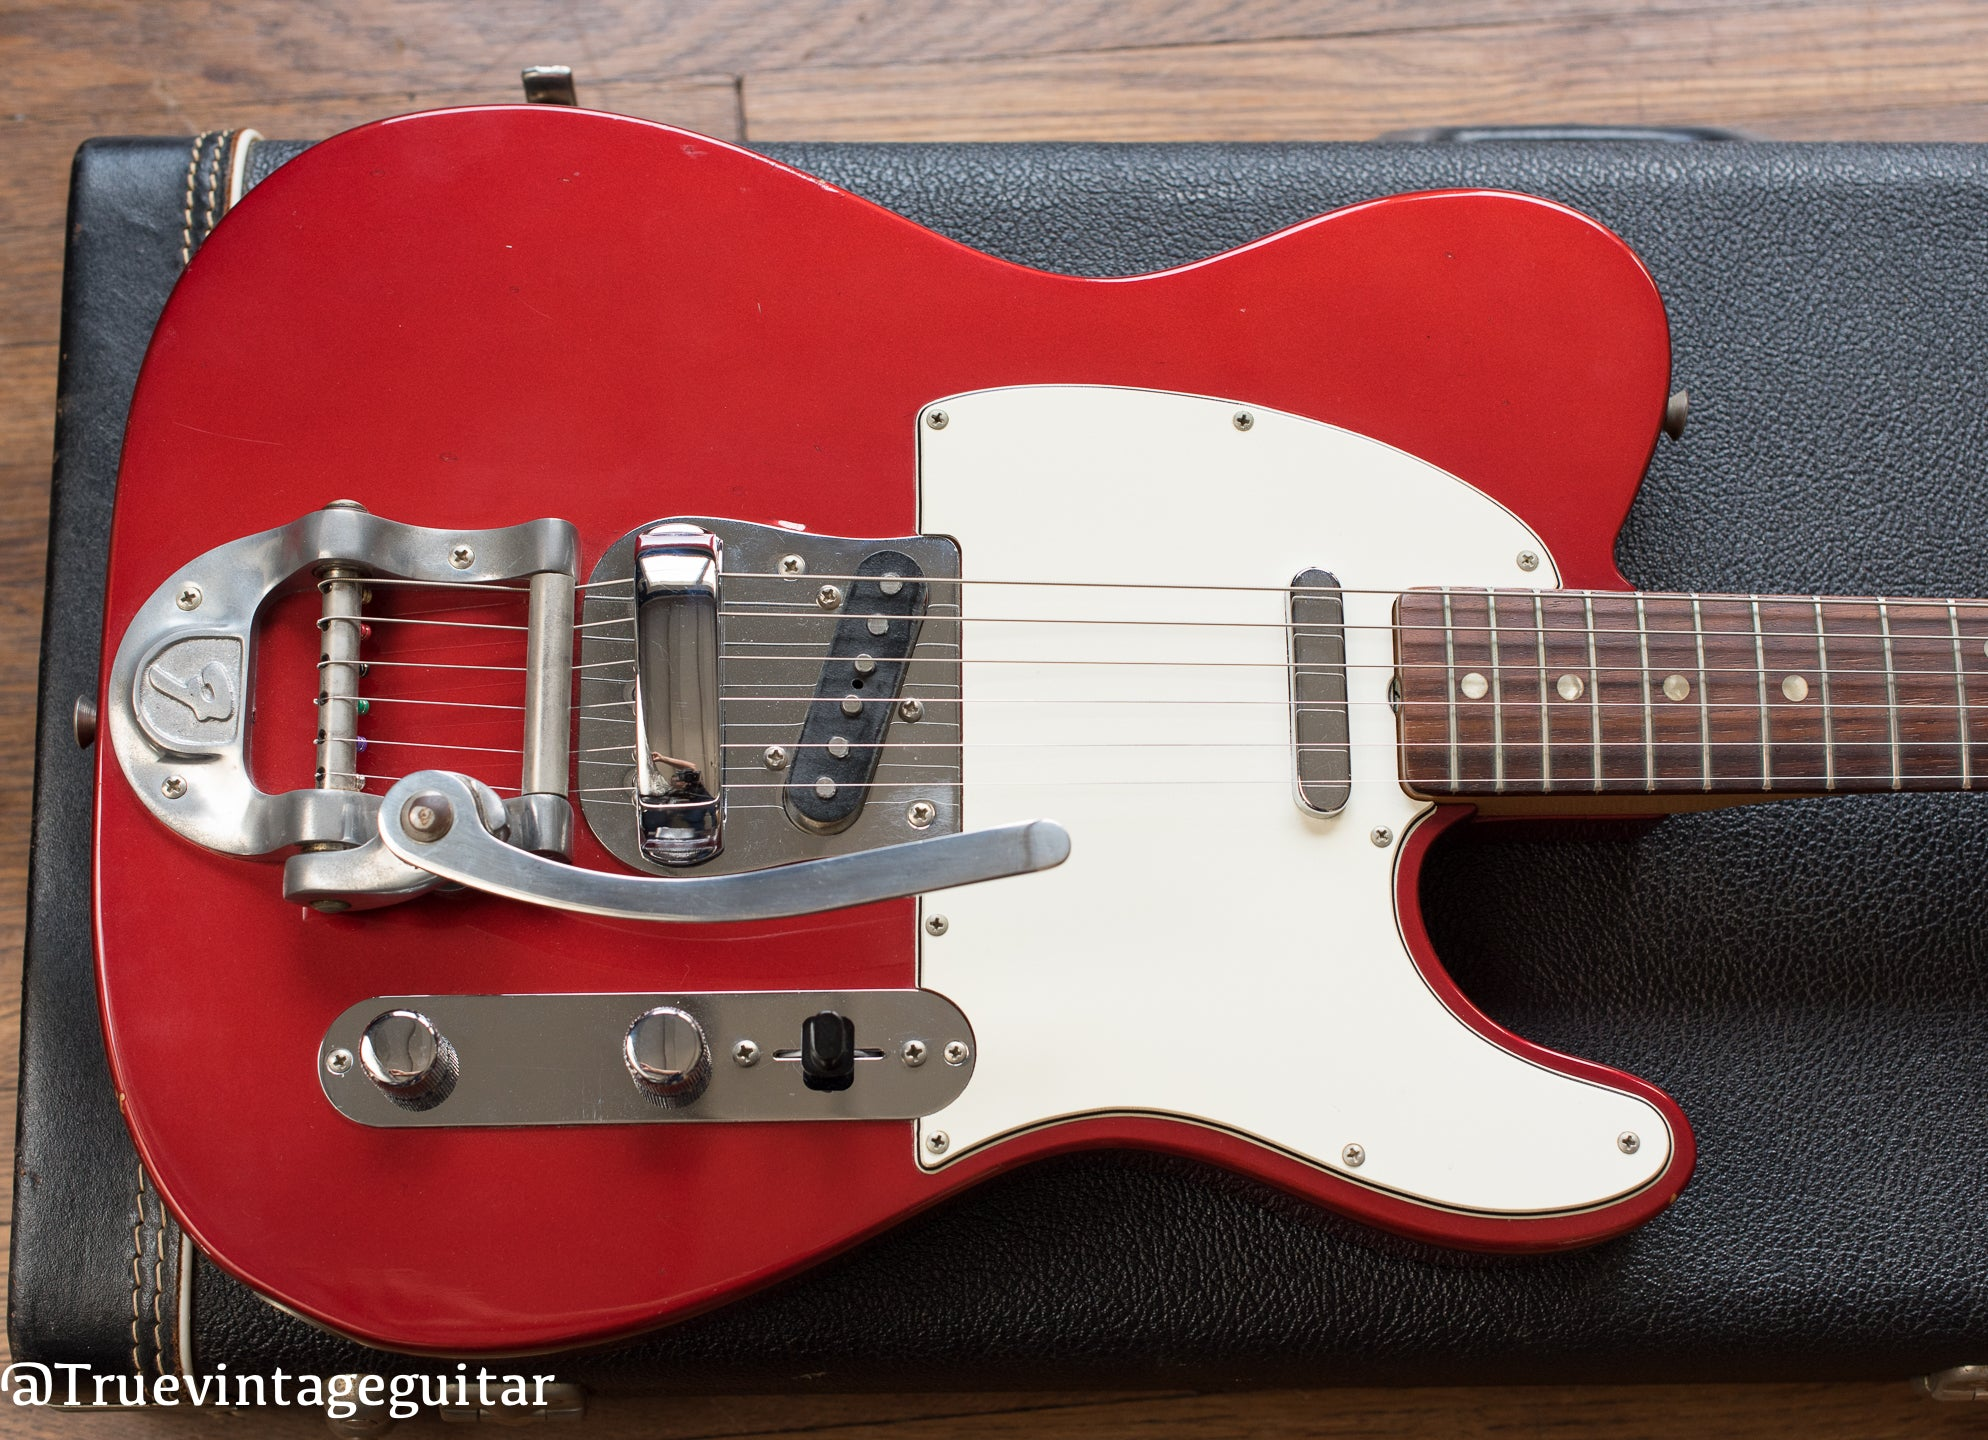 Fender Telecaster 1968 in Candy Apple Red Metallic finish with Bigsby tailpiece